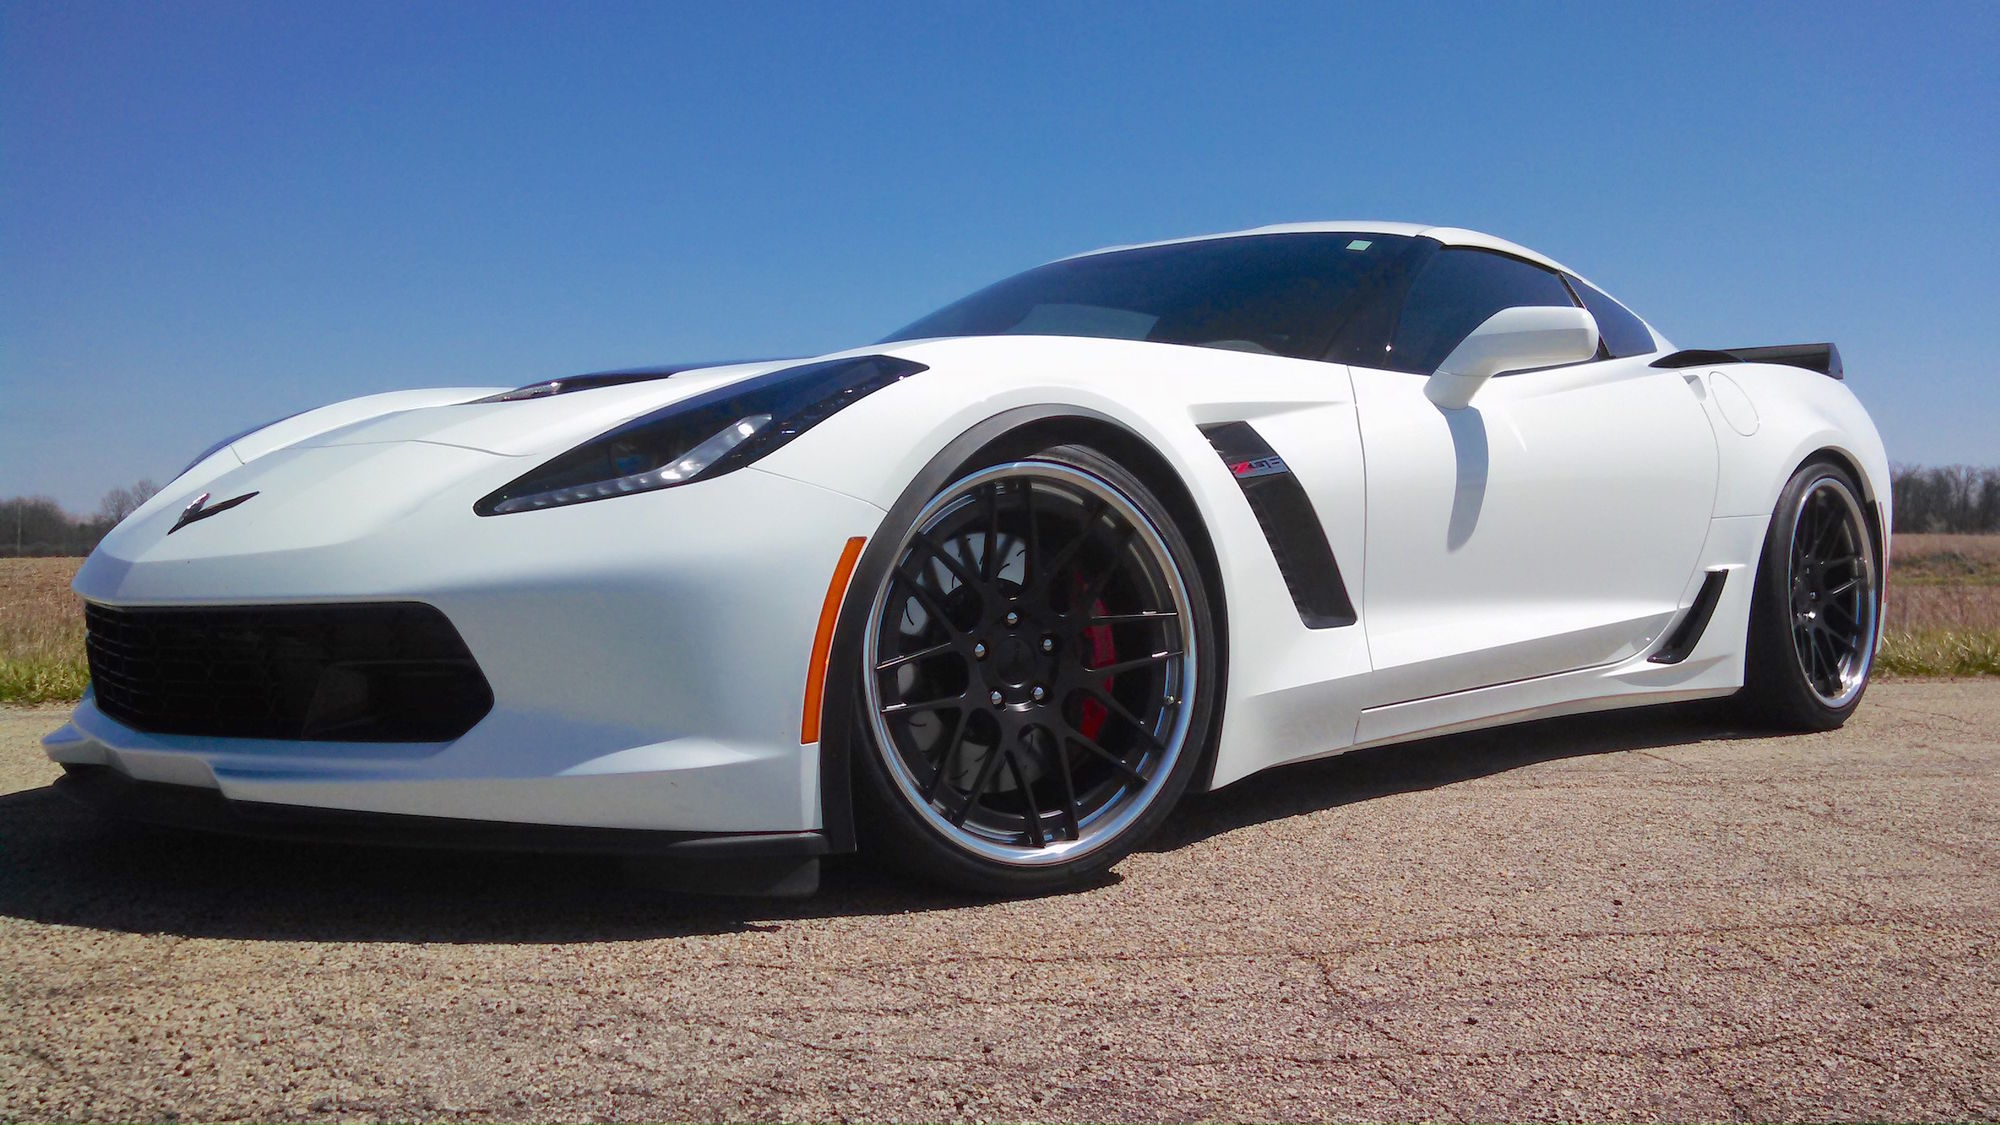 2016 Chevrolet Corvette Z06 | Randy Trott's C7 Corvette Z06 on Forgeline DE3C-SL Concave Stepped Lip Wheels